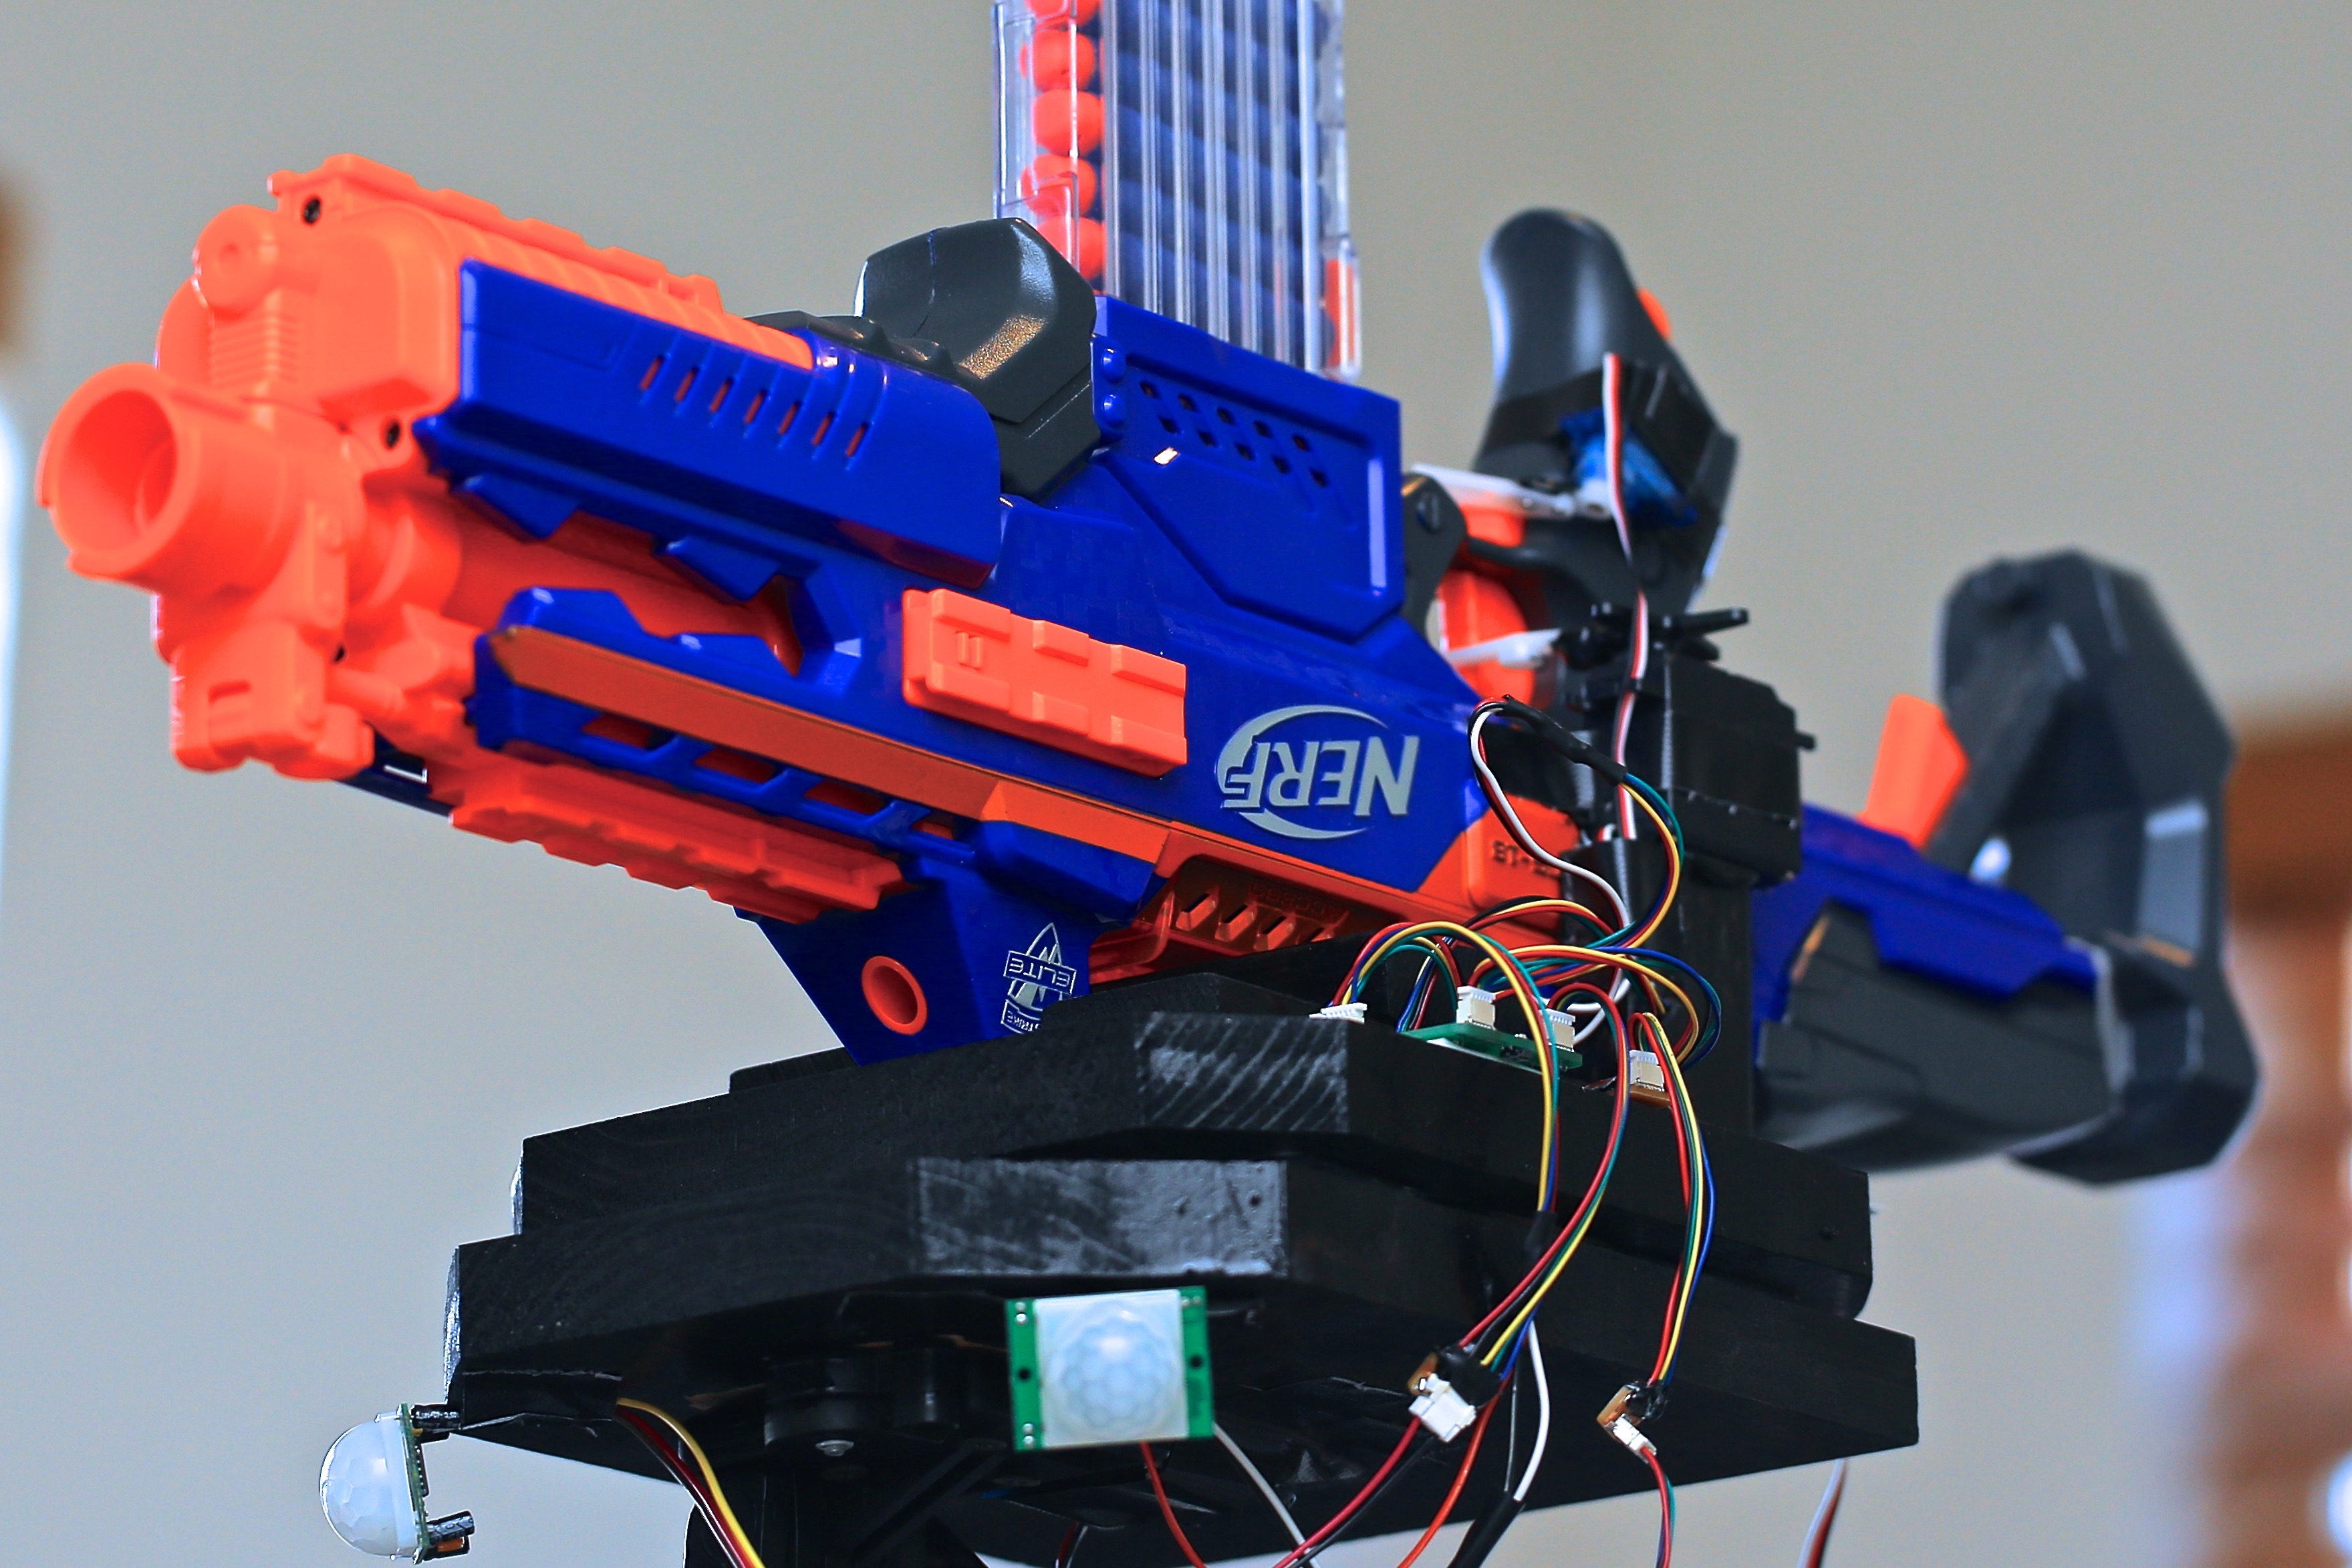 Foamland Security Sibling Proof Your Stuff With A Nerf Sentry Gun Make